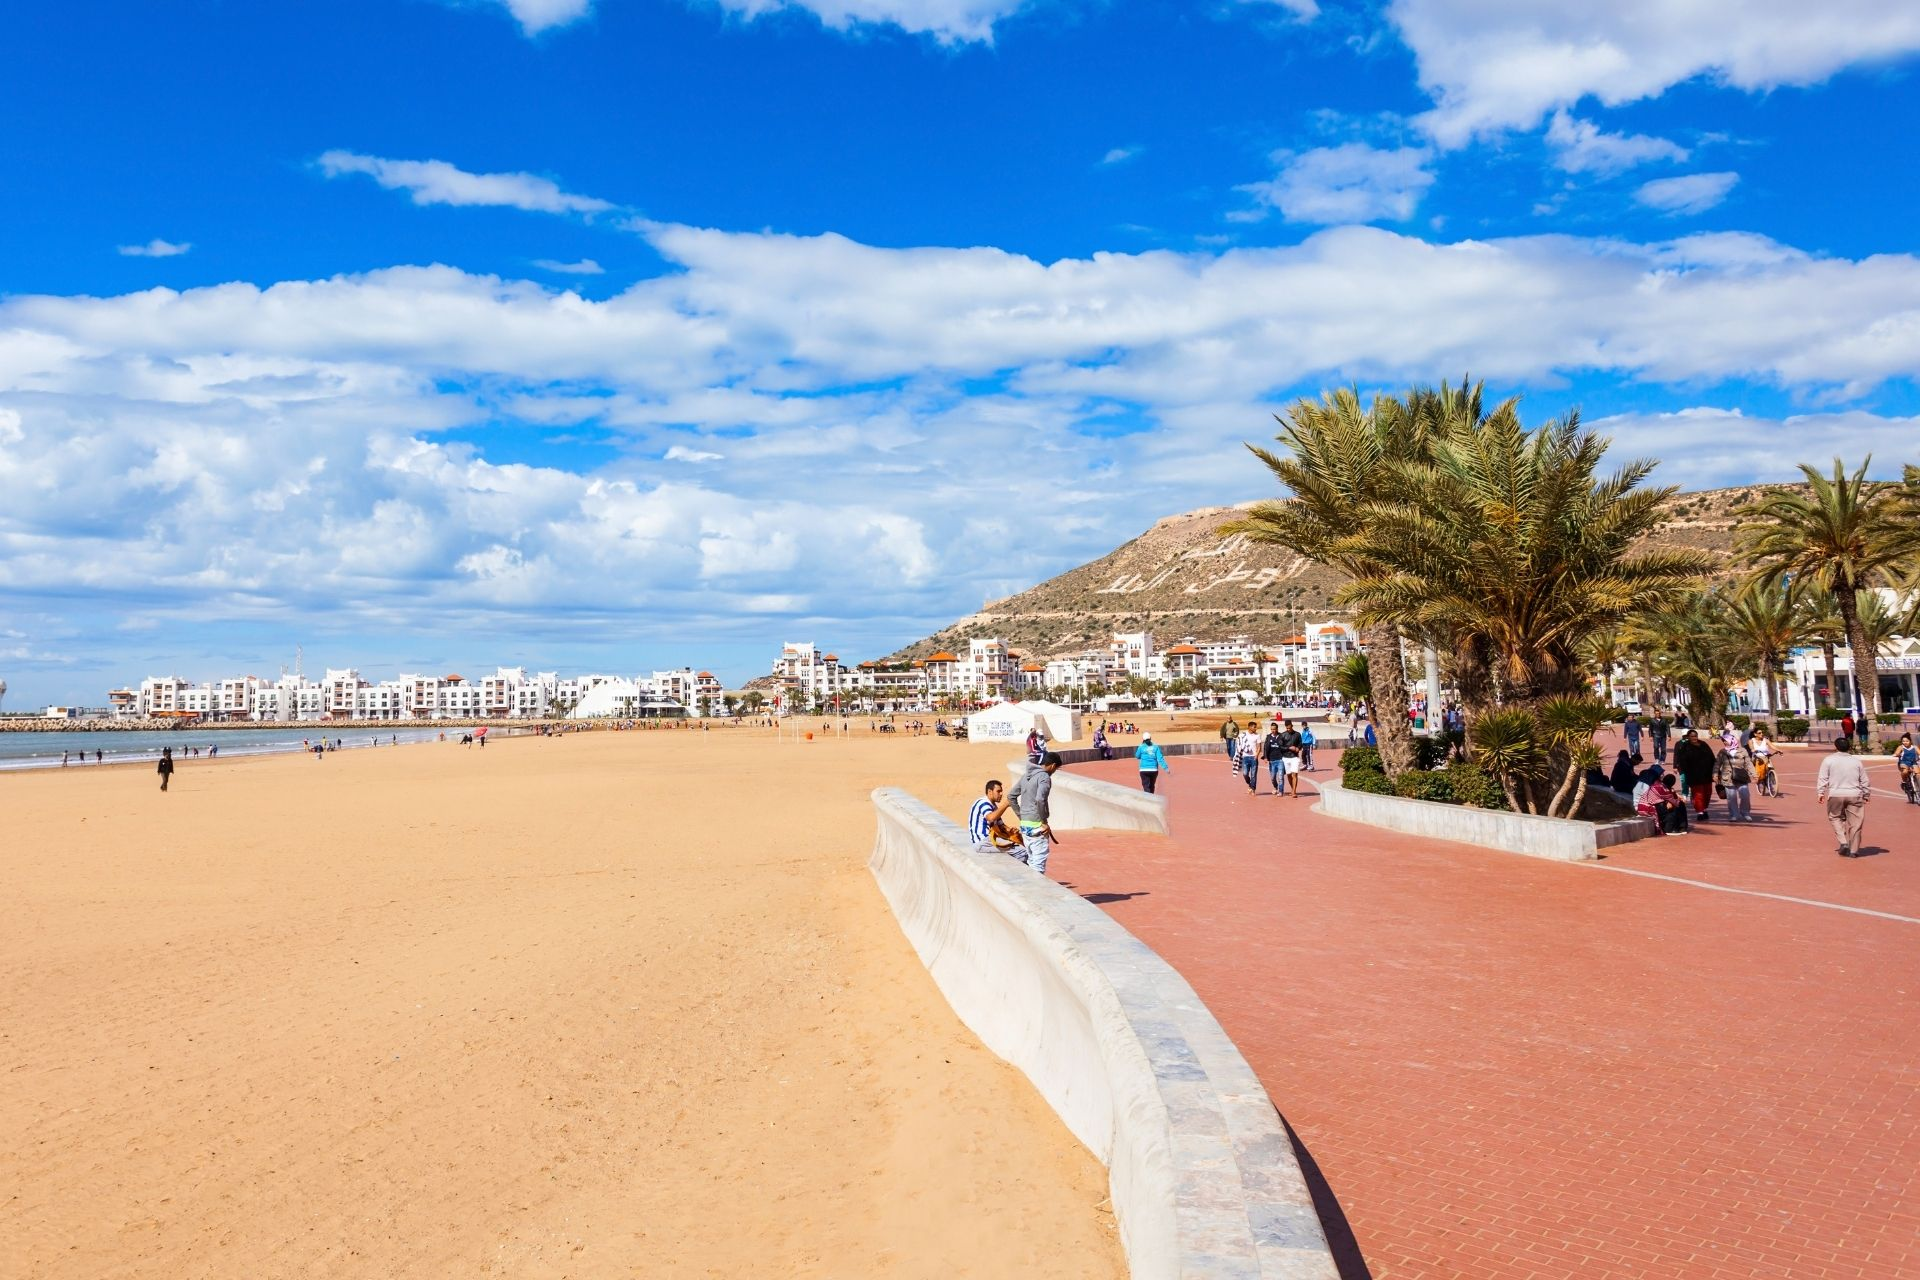 Popular hotels in Agadir